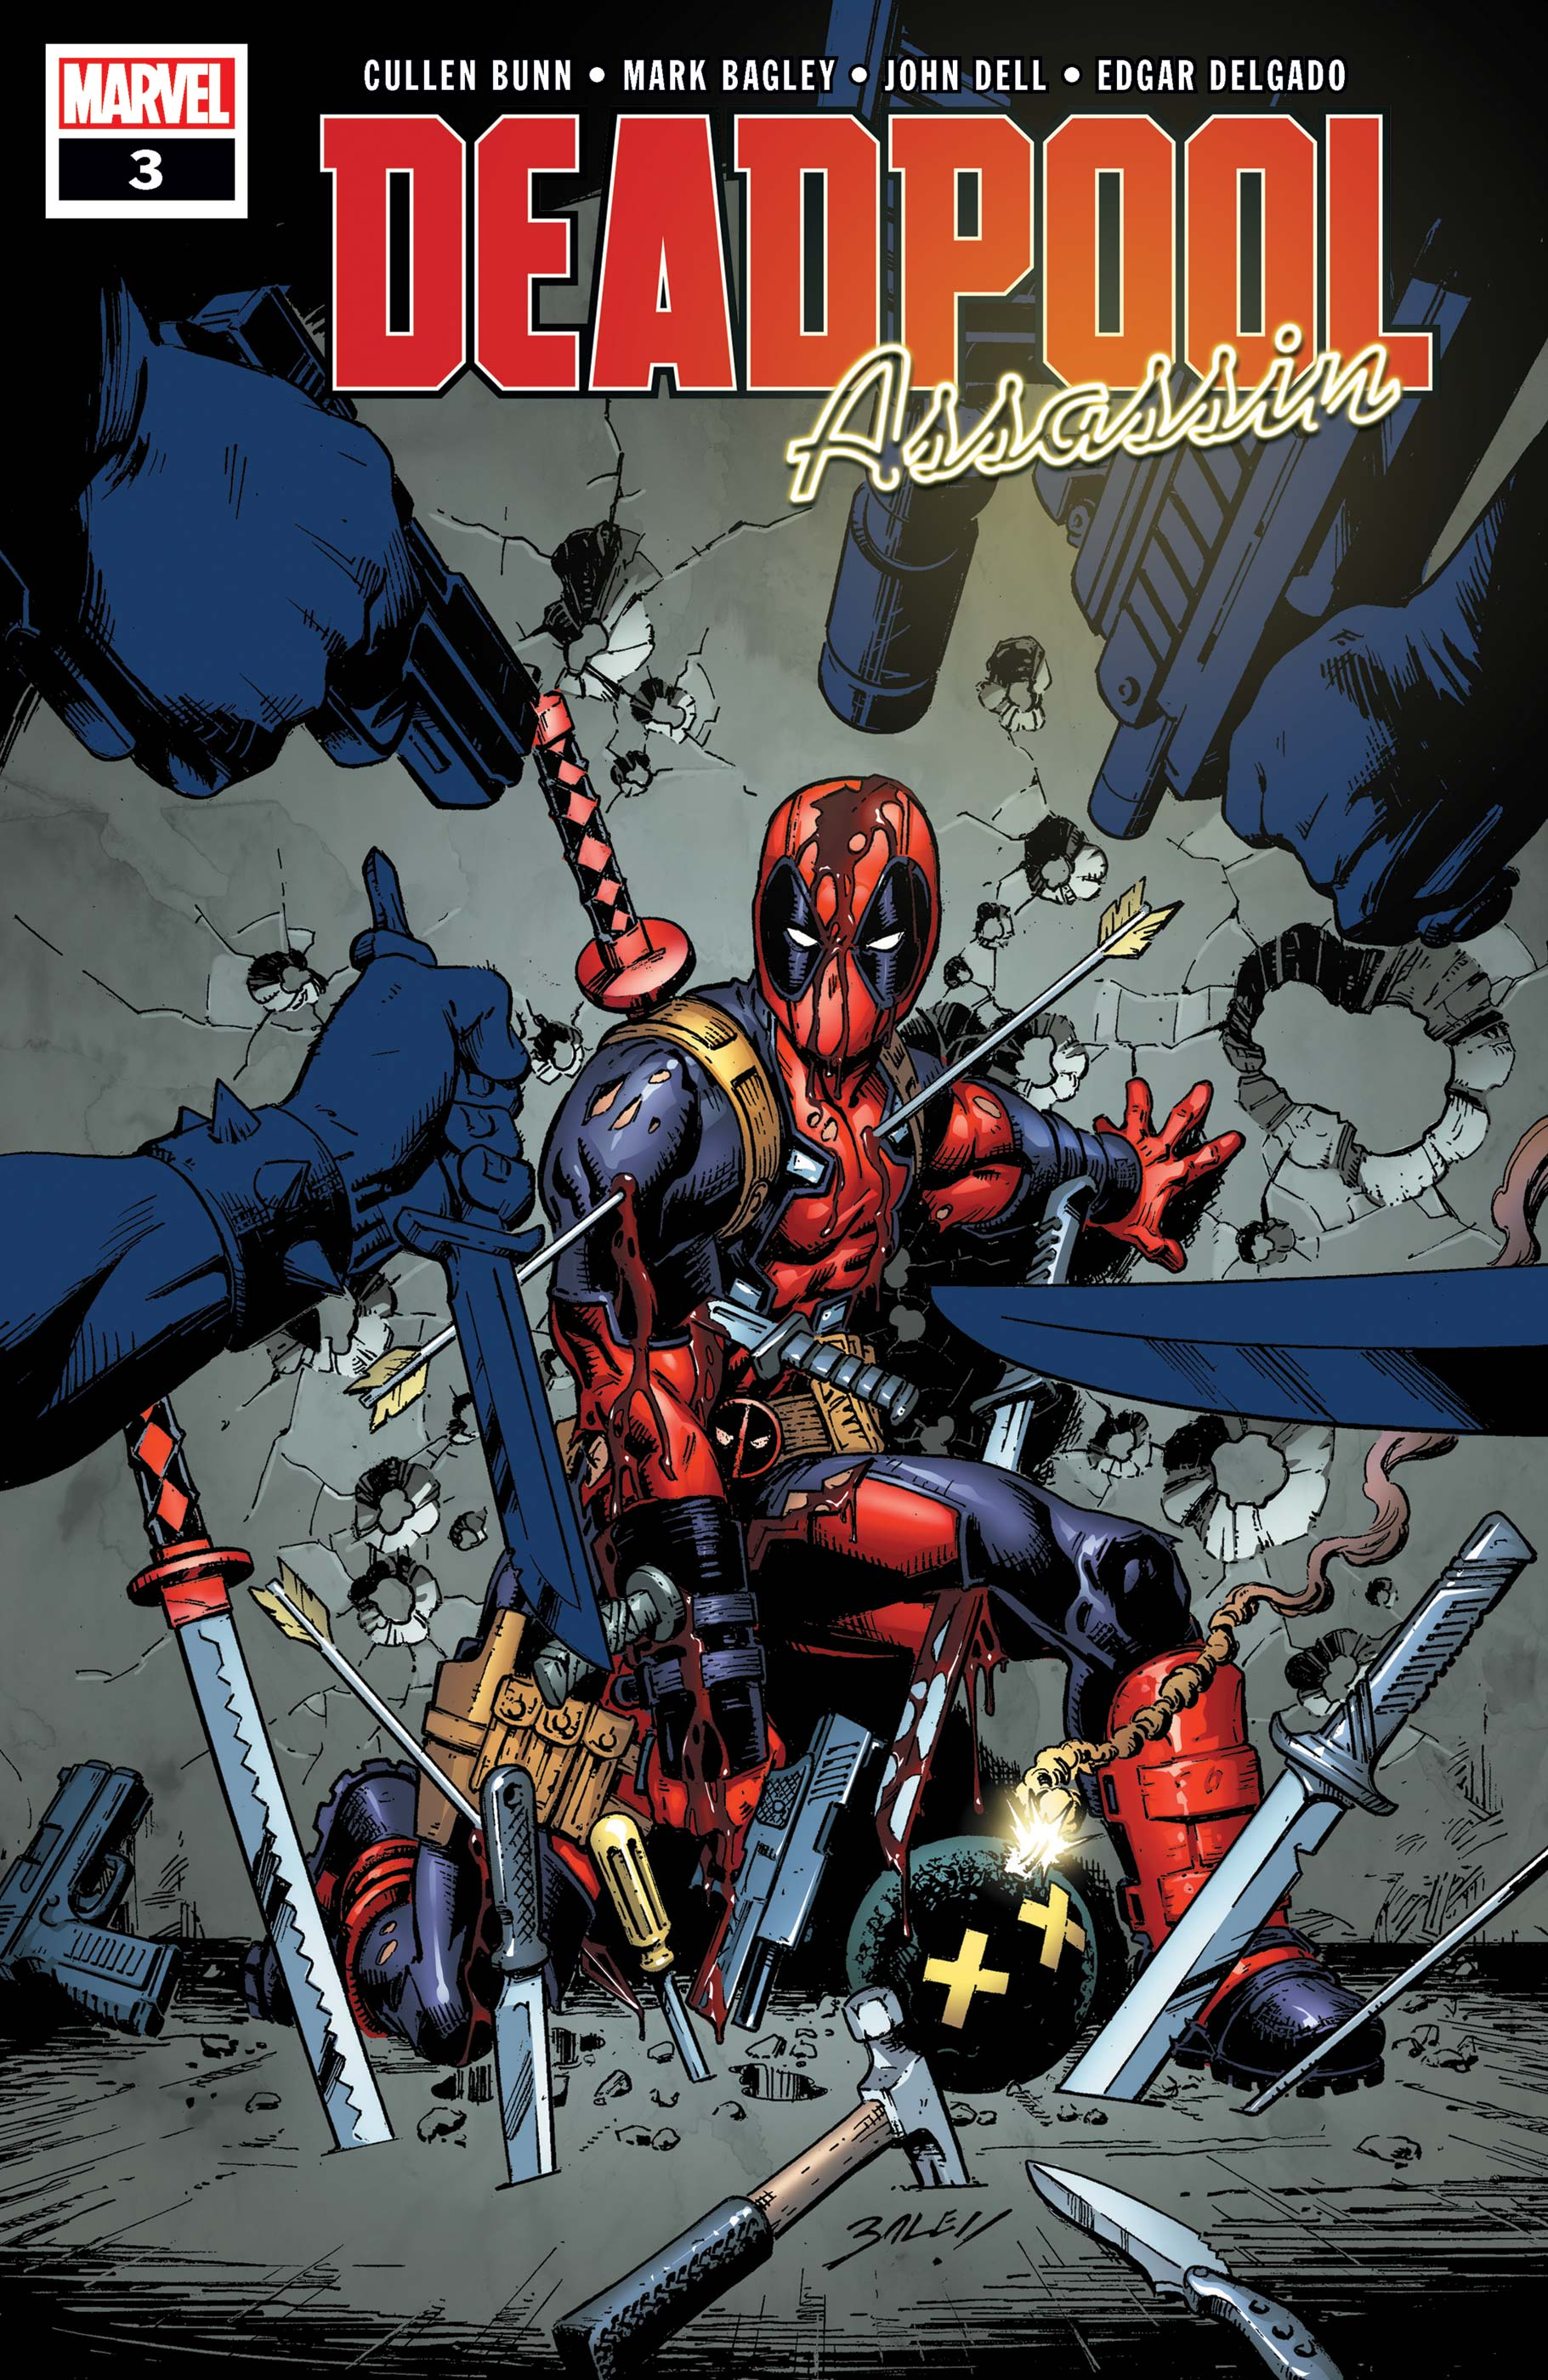 Deadpool: Assassin (2018) #3